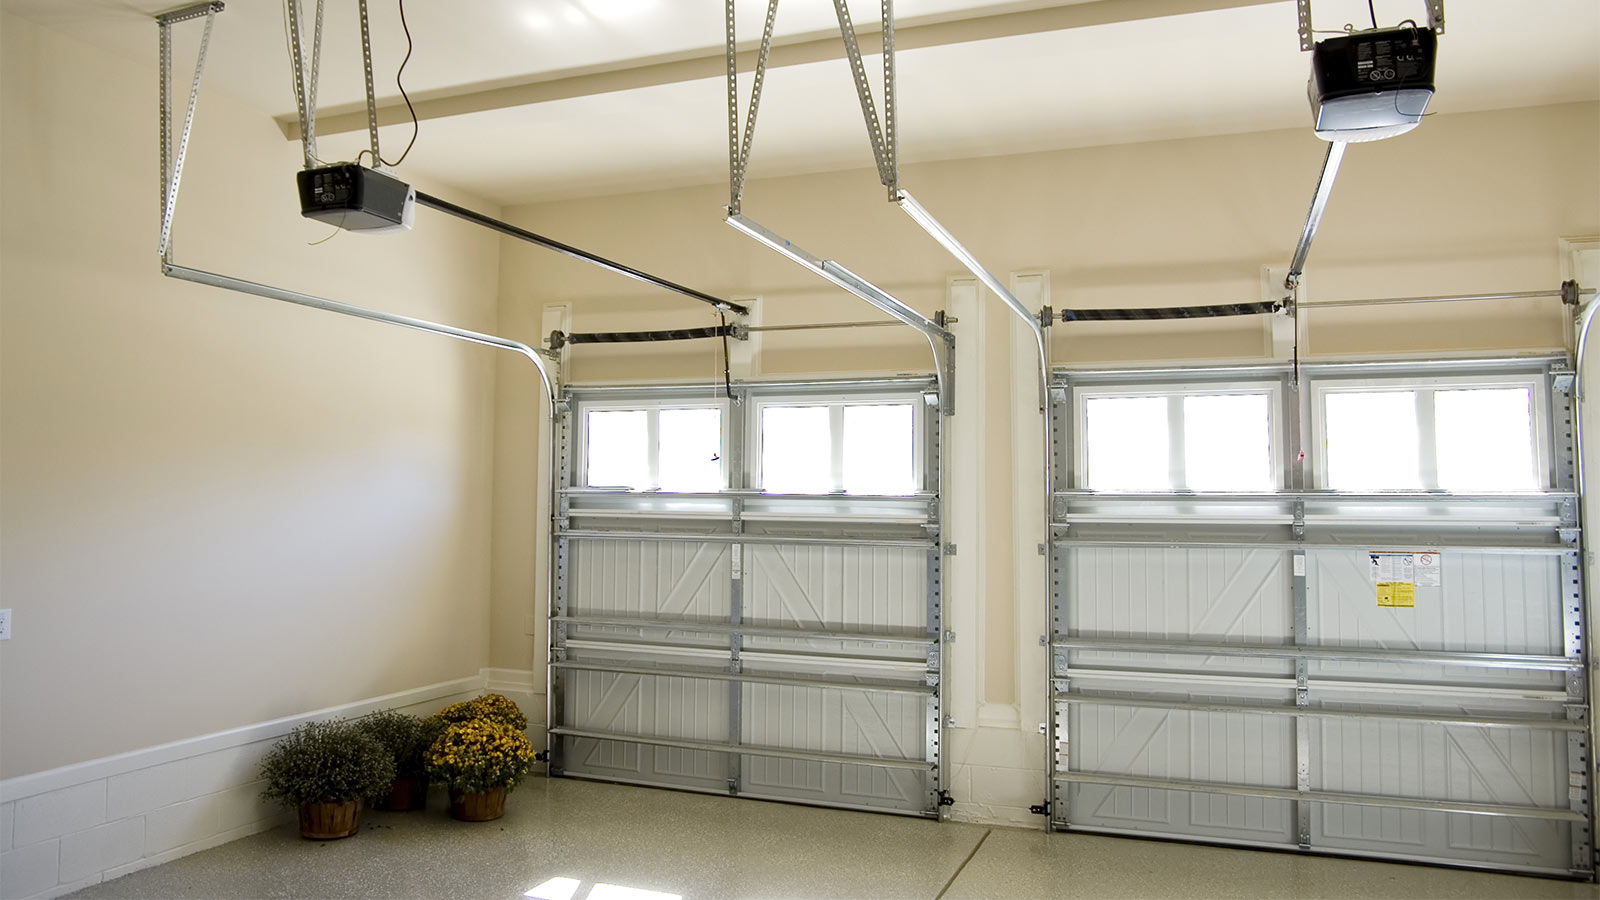 Sectional Garage Doors from Steel Security Doors Cambridge suppliers.